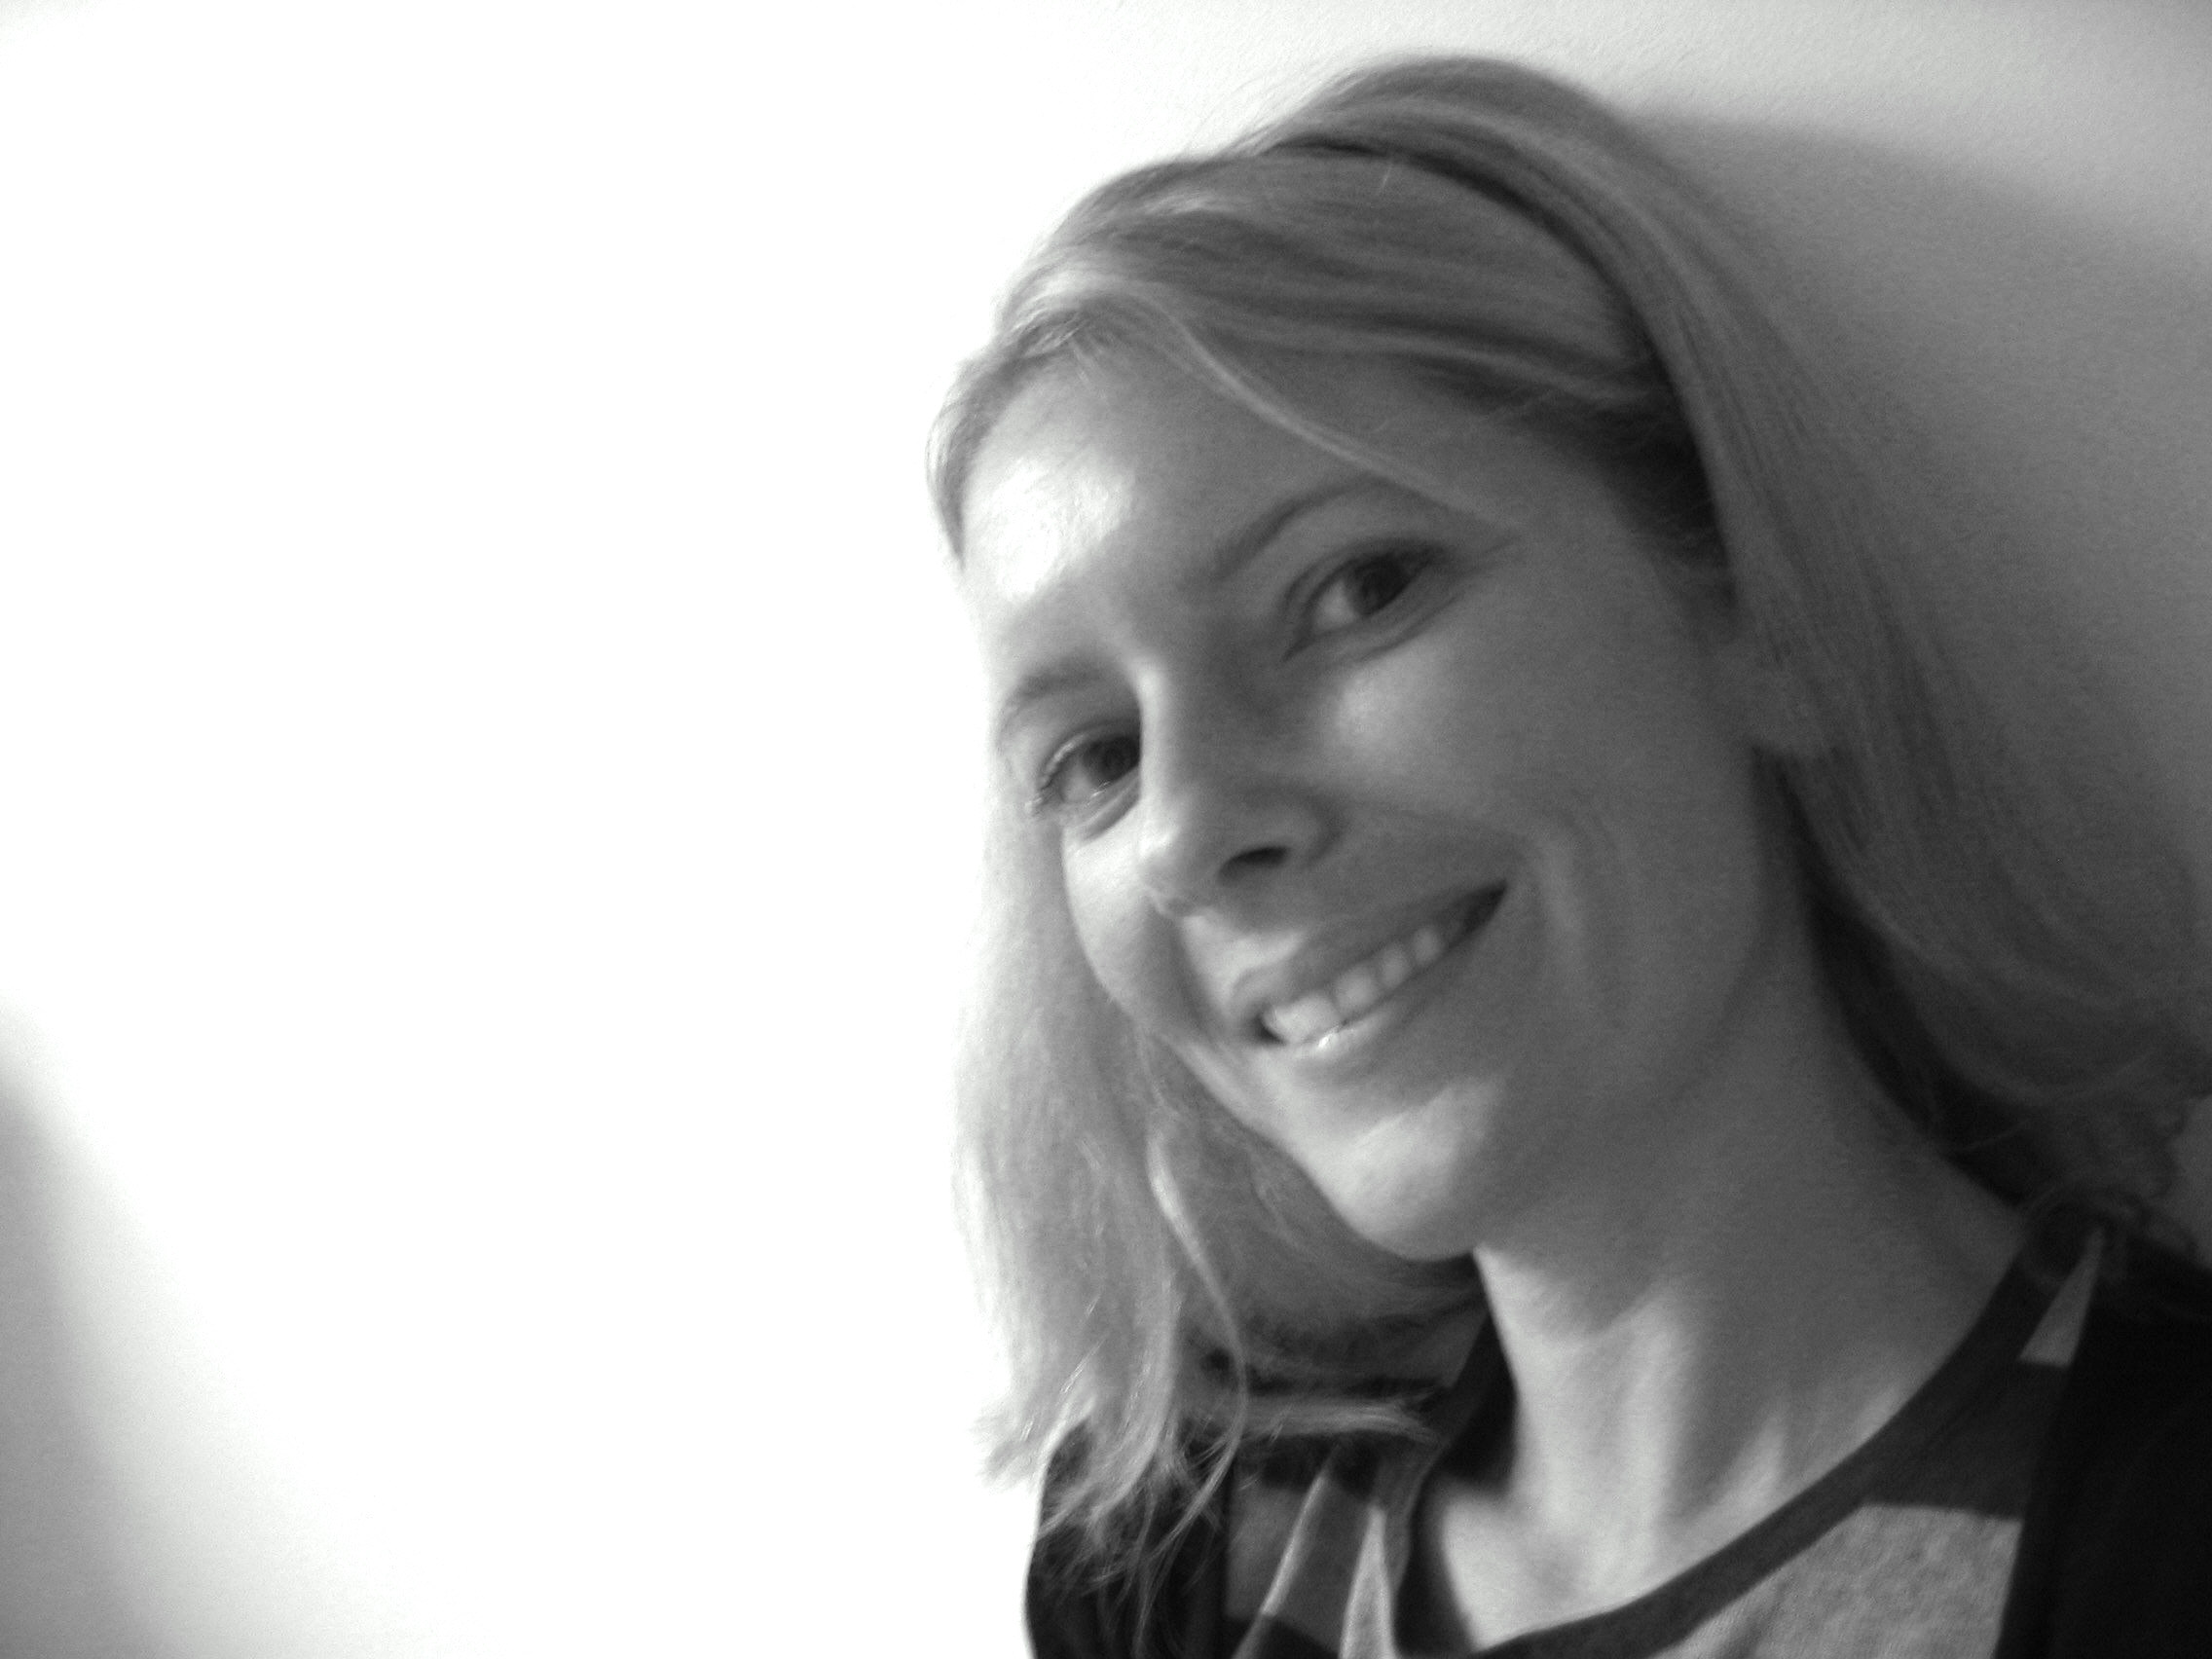 Charlotte Steed - London Acupuncturist, Reflexologist, Nutritional Therapist